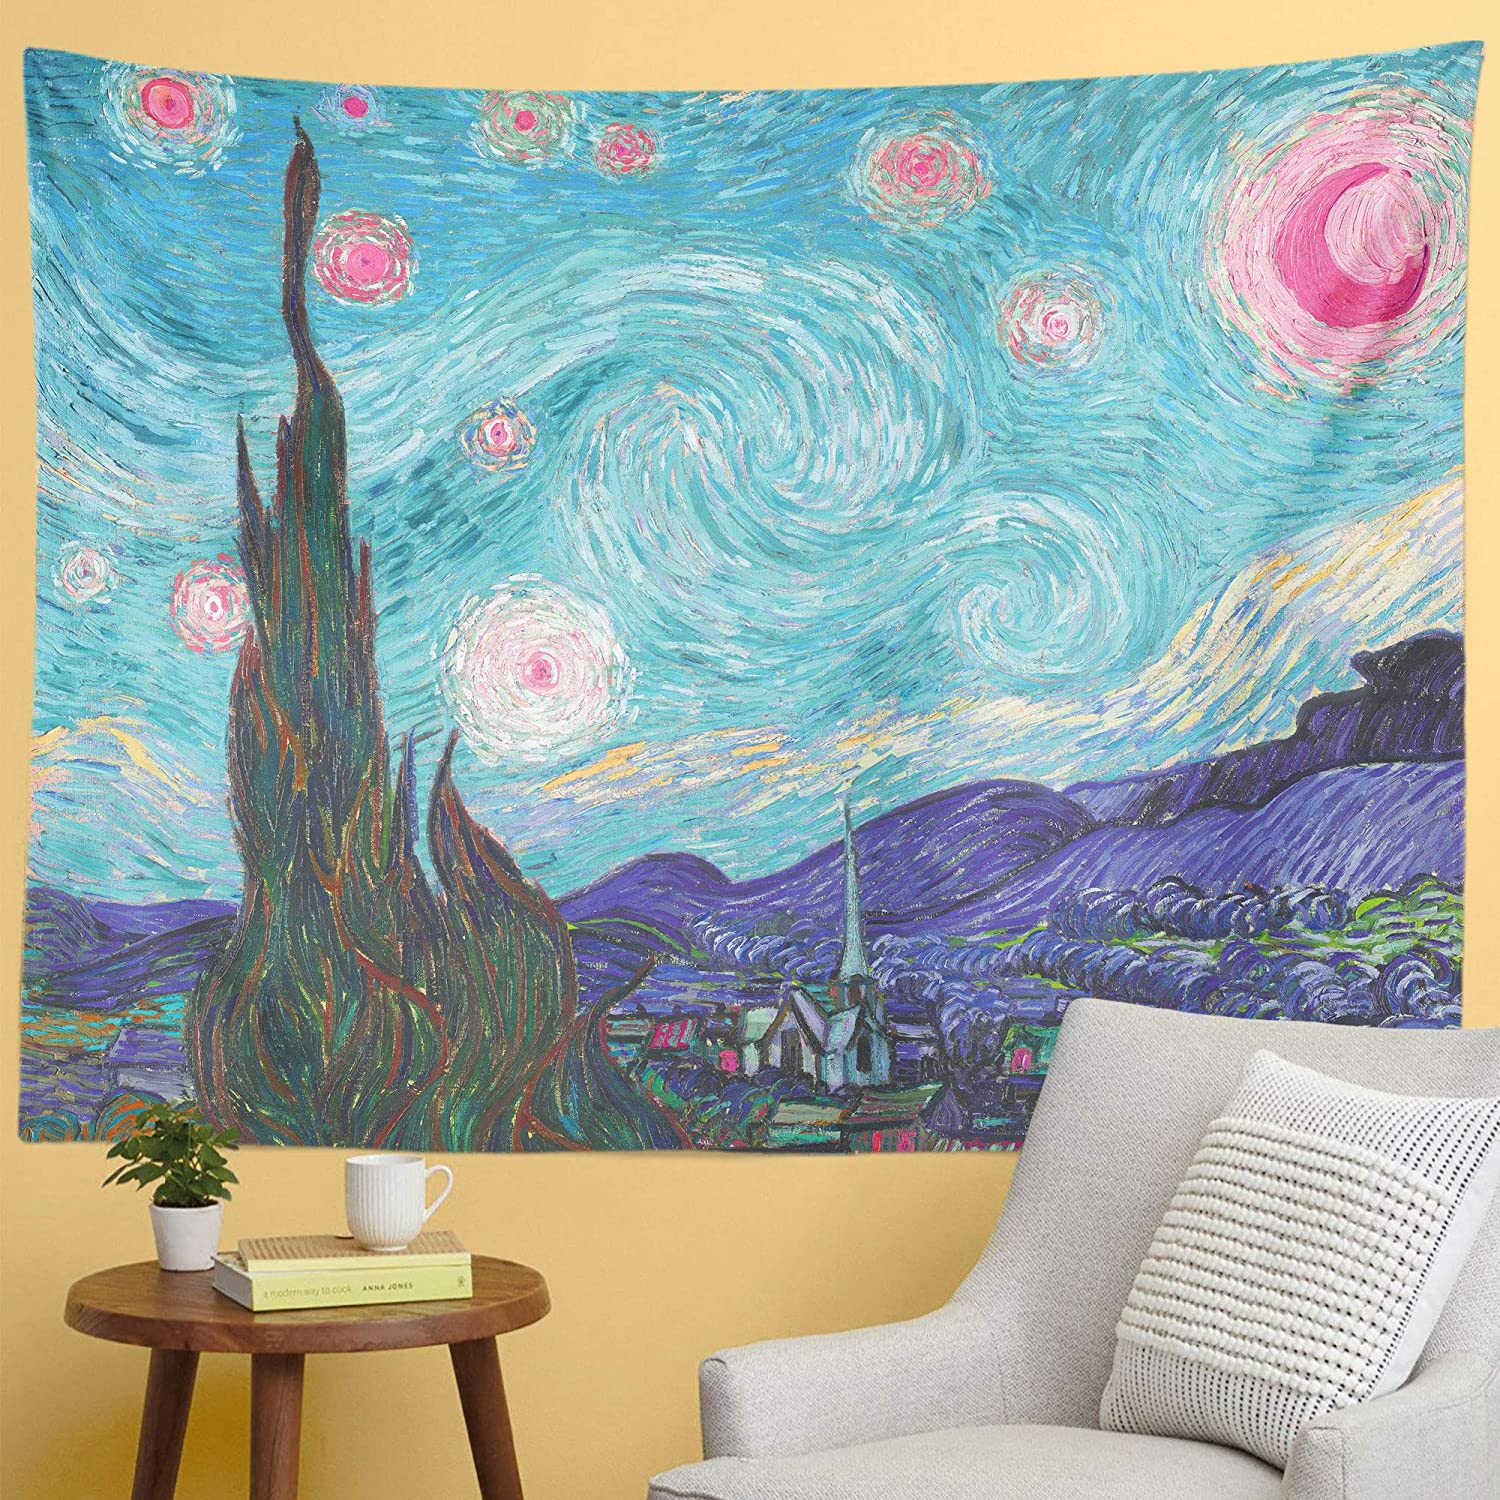 Jinxy Van Gogh Art Tapestry Starry Night Tapestry Turquoise Blue Dream Pastel Tapestry Wall Hanging for Party Bedroom Living Room Dorm Home Decor (59.1